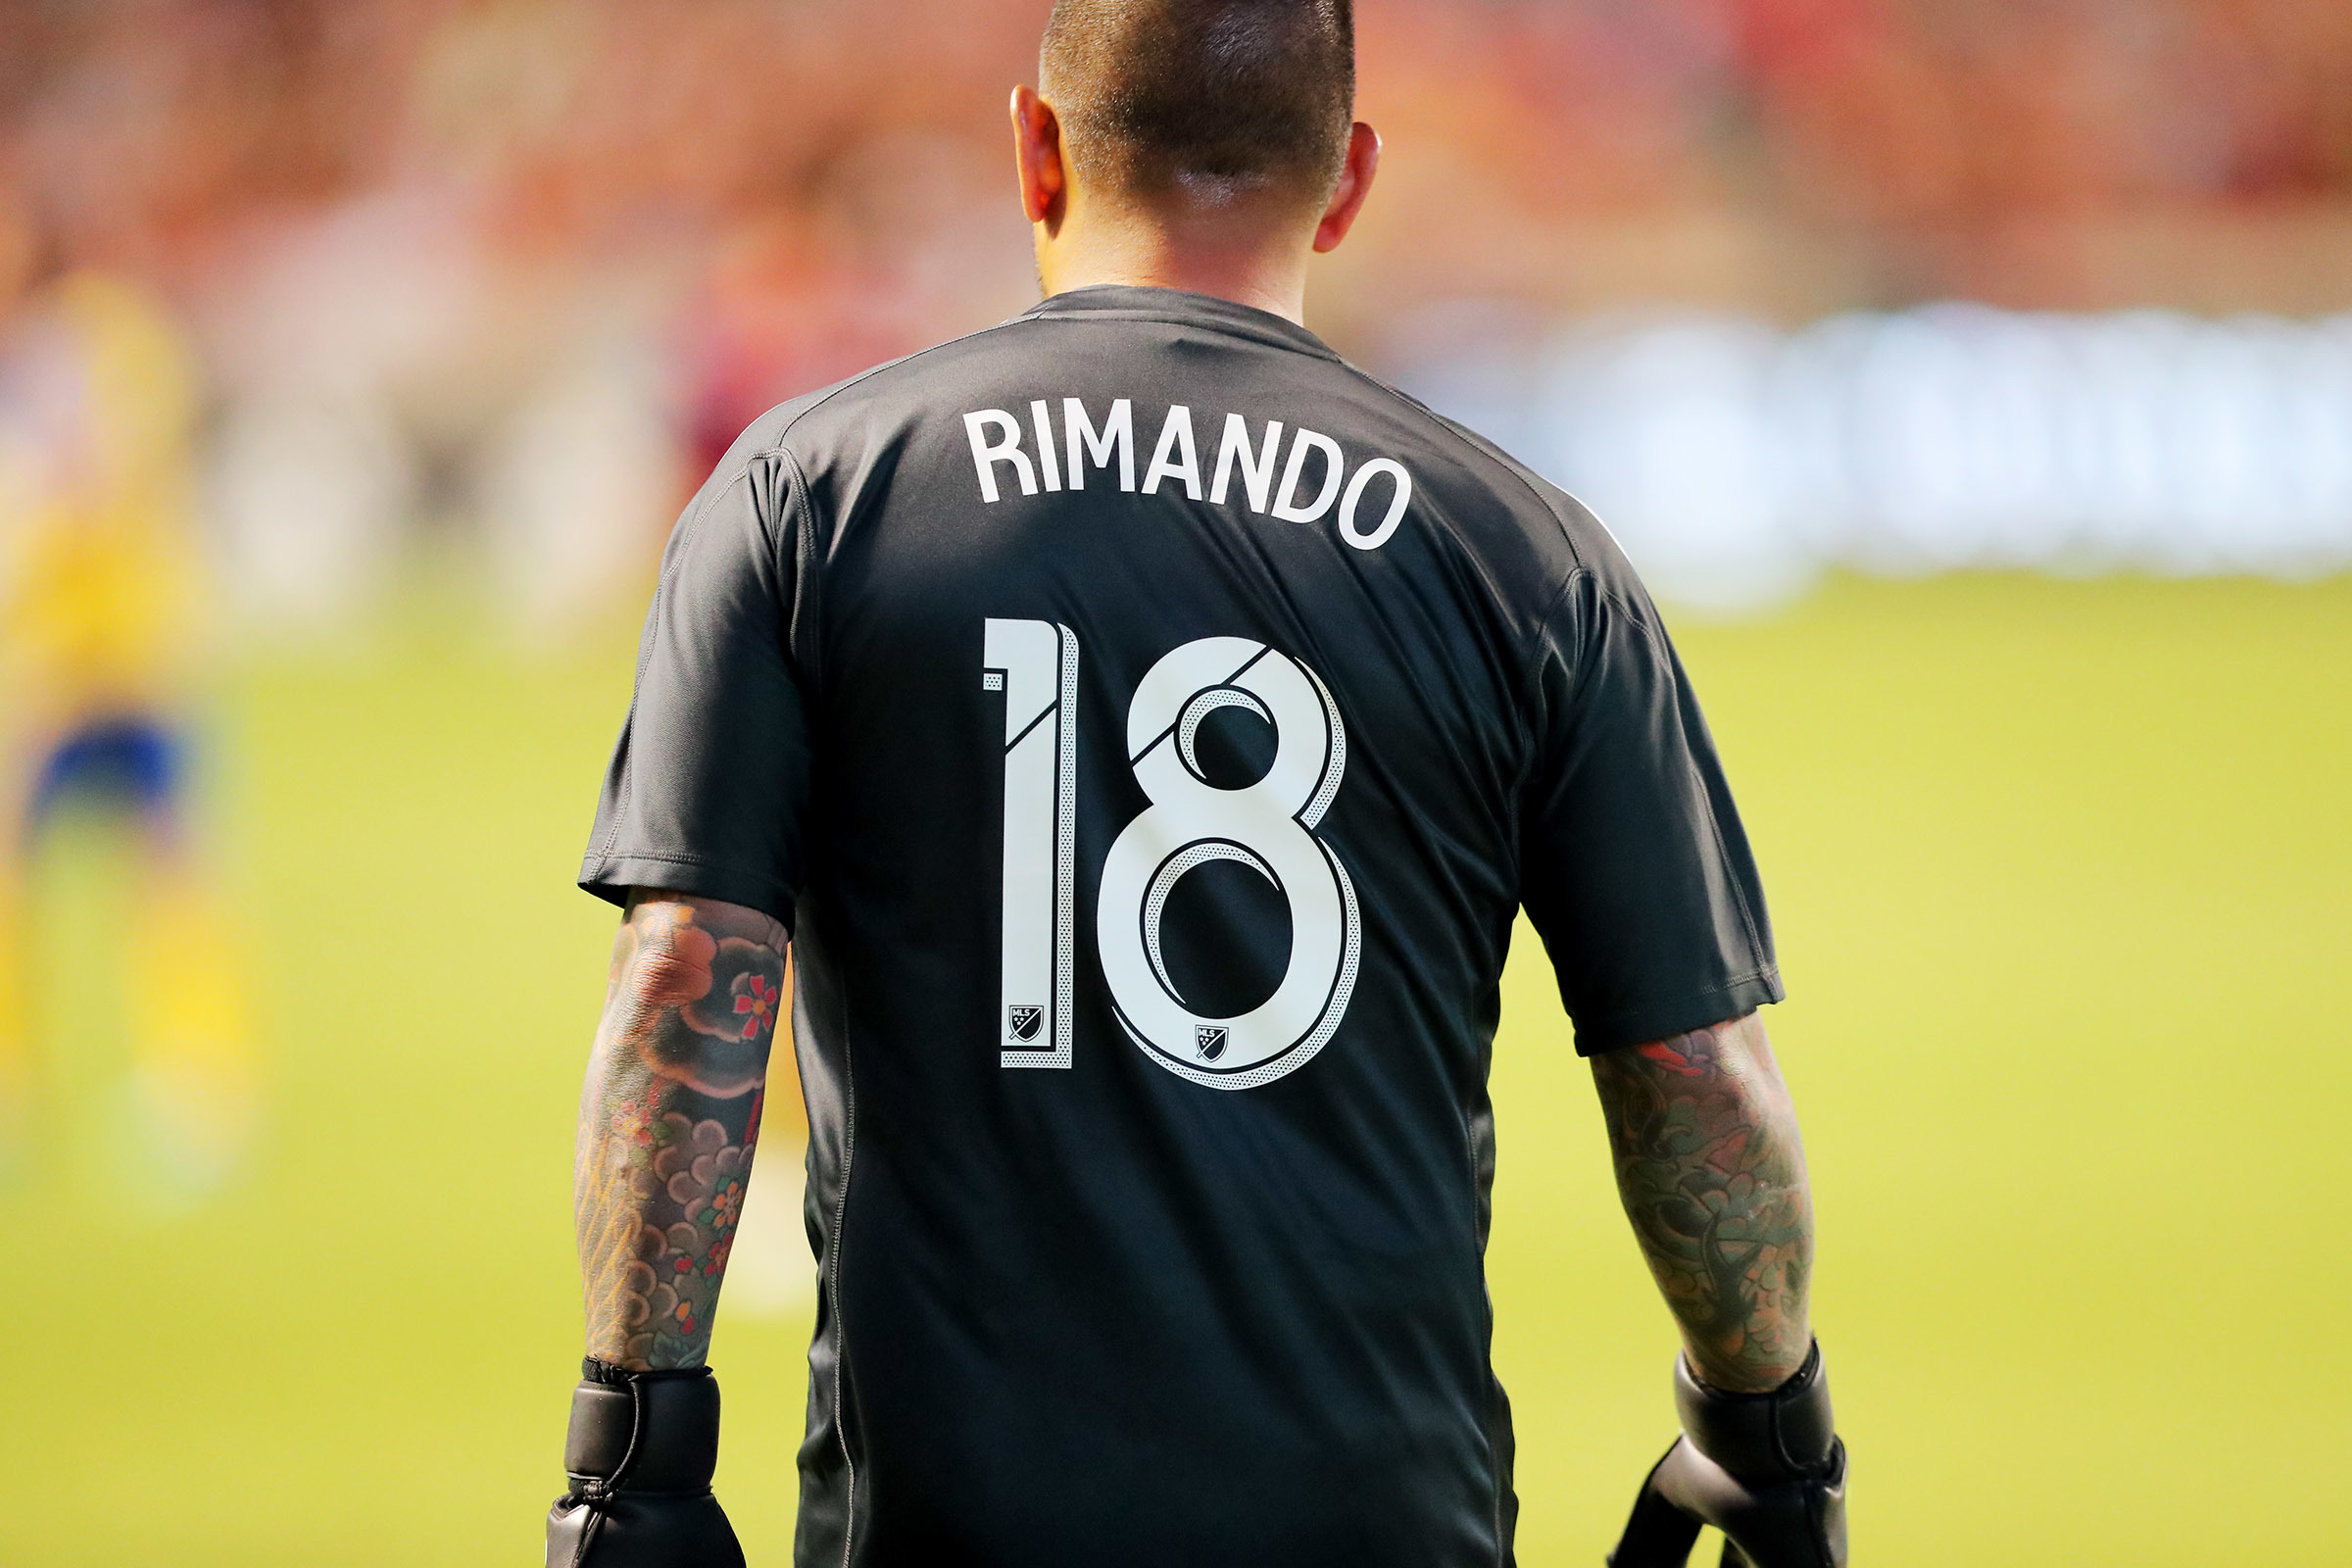 buy online b616c 8d09d Nick Rimando honored, humbled by MLS All-Star selection in ...